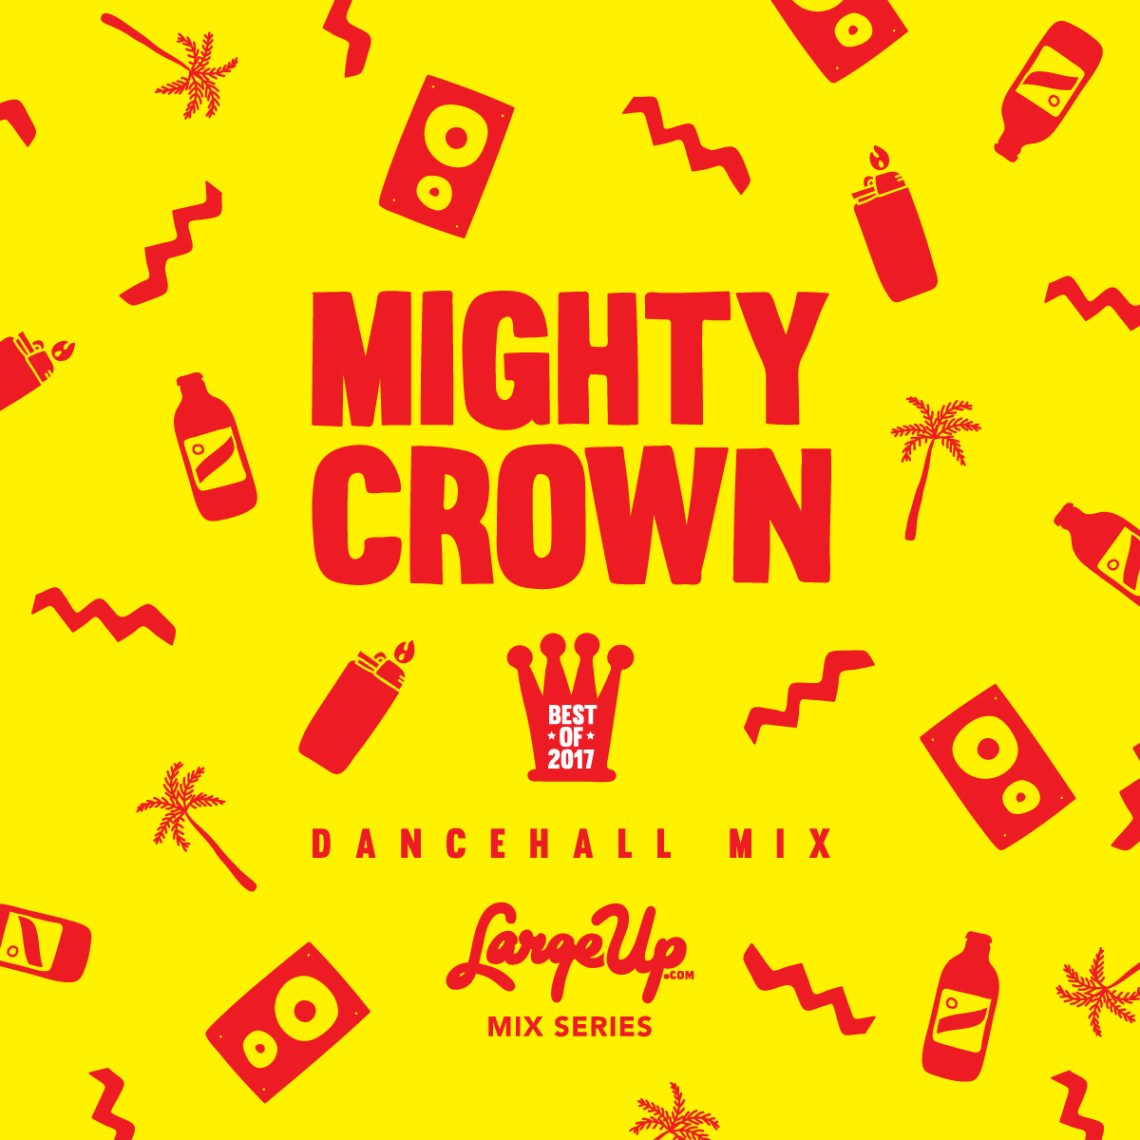 Mighty Crown - Best of 2017 Dancehall Mix